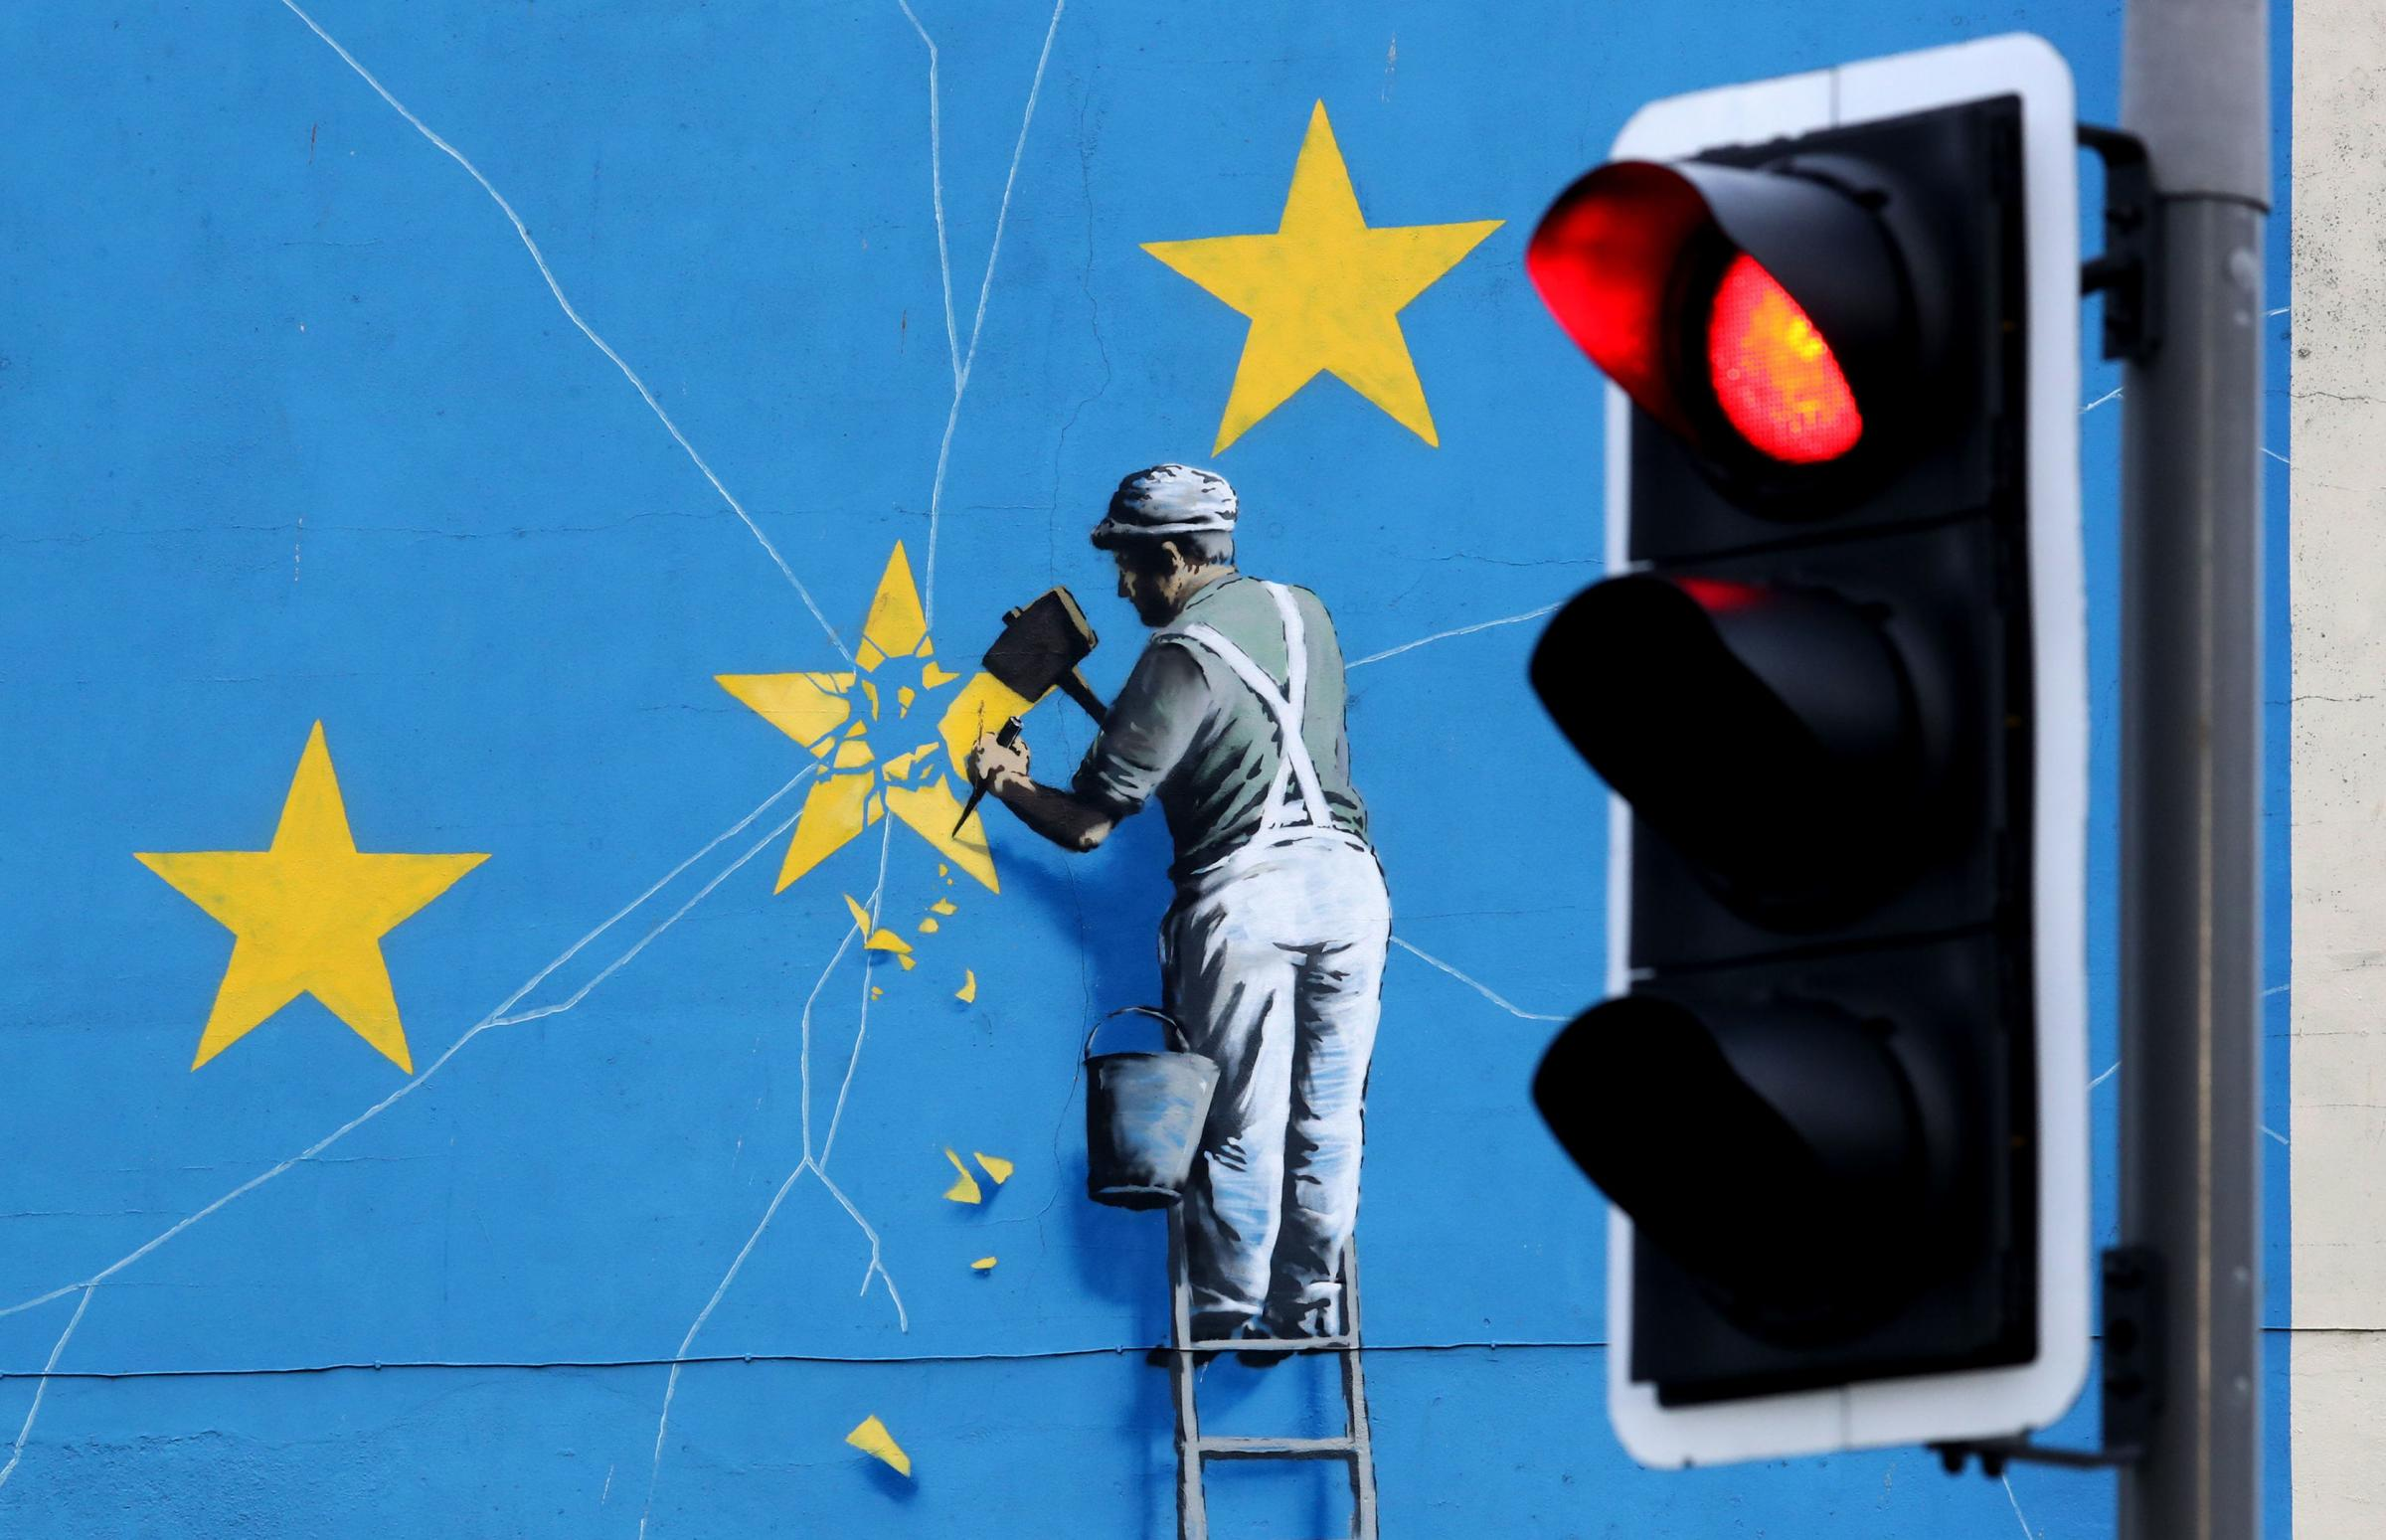 This Banksy mural appeared amidst the Brexit uncertainty